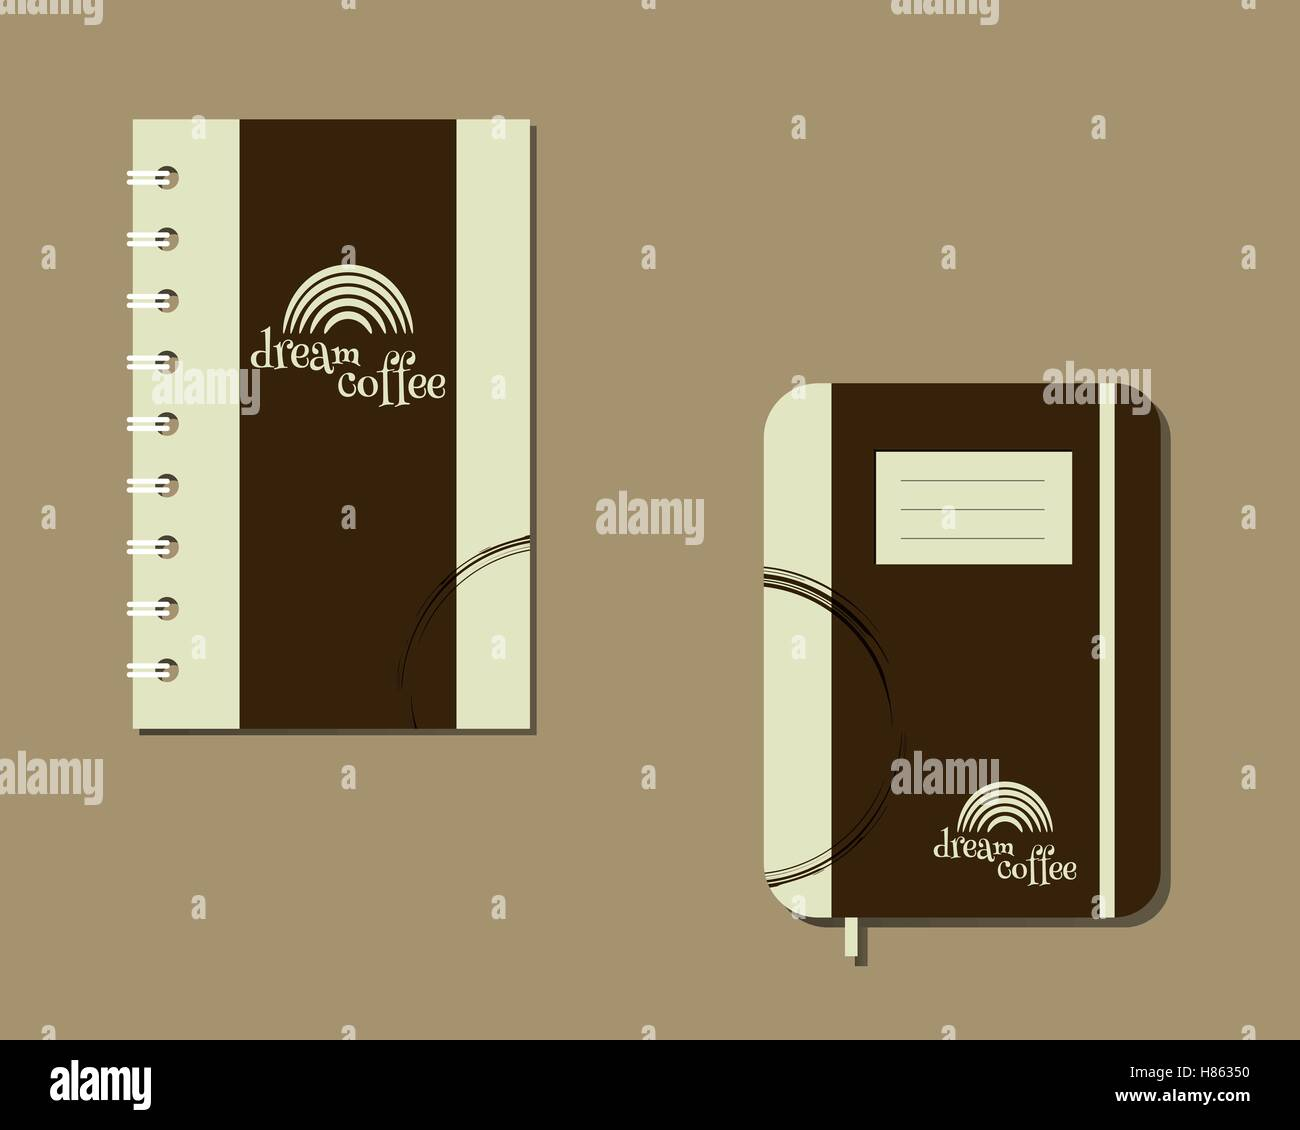 Corporate Identity Template Design For Cafe Restaurant And Other Stock Vector Image Art Alamy